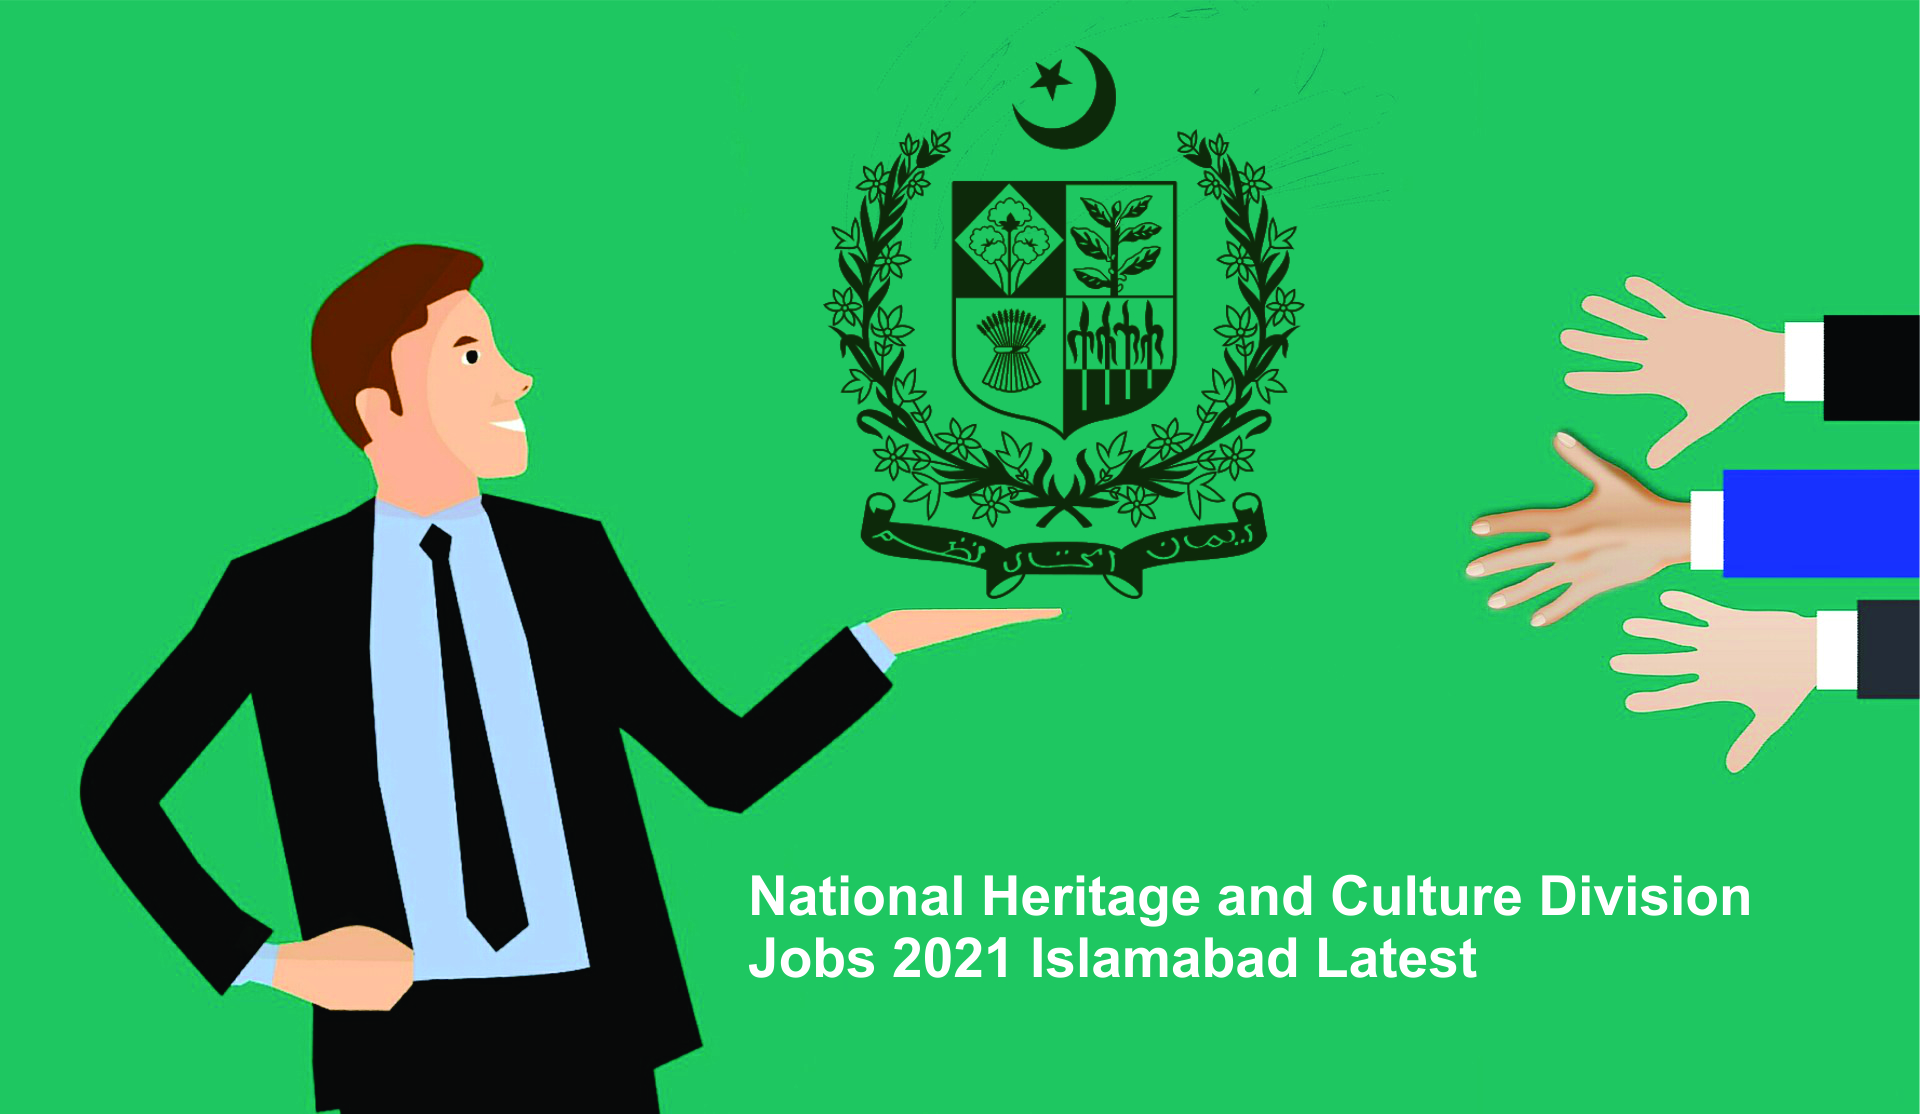 National Heritage and Culture Division Jobs 2021 Islamabad Latest